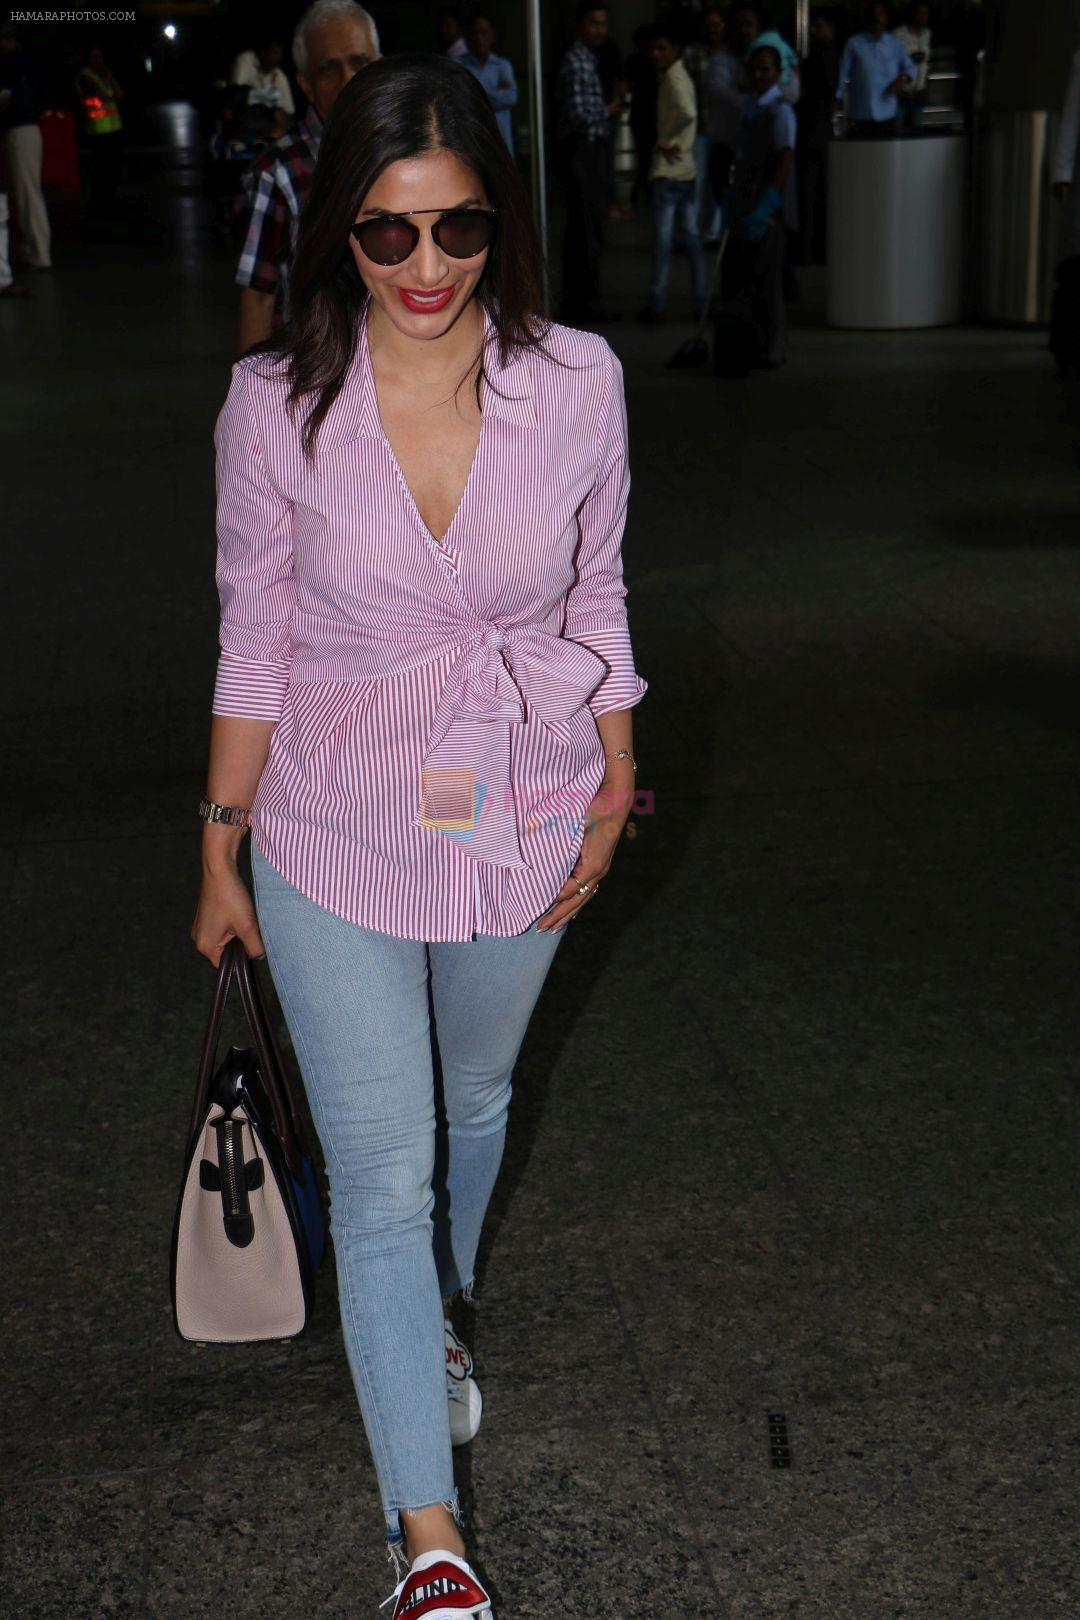 Sophie Choudry at the airport on 14th June 2017